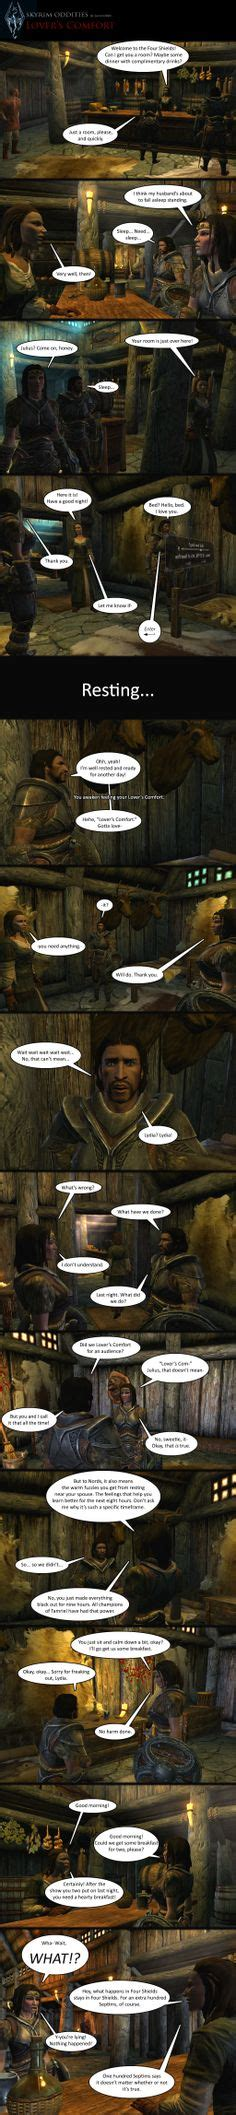 skyrim lovers comfort 1000 images about skyrim on pinterest the elder scrolls